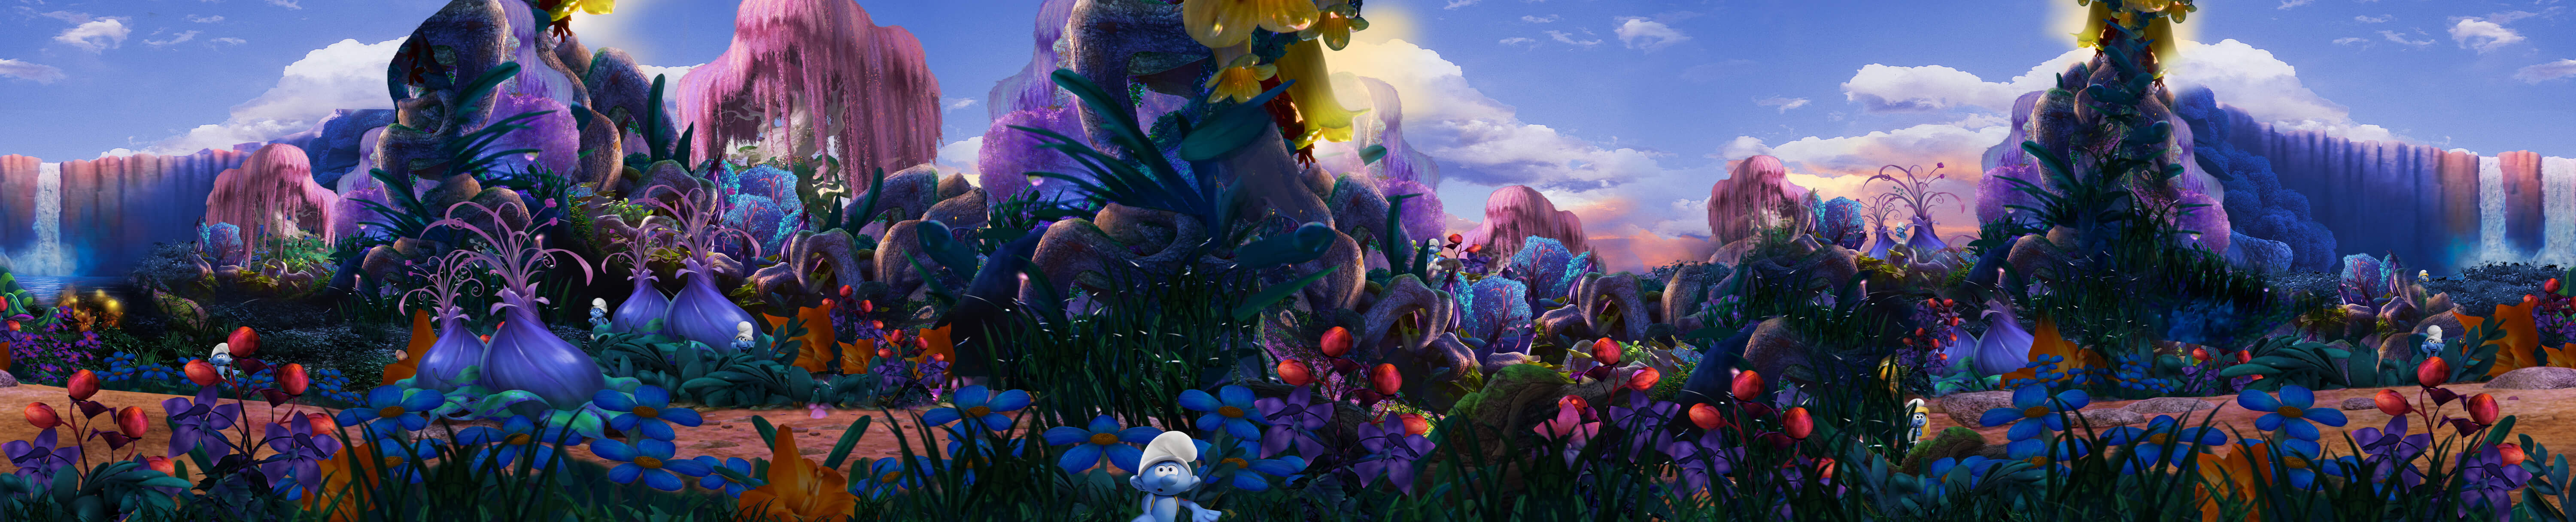 """5 Super fun facts about the Smurfs you should know before catching """"Smurfs: The Lost Village"""""""